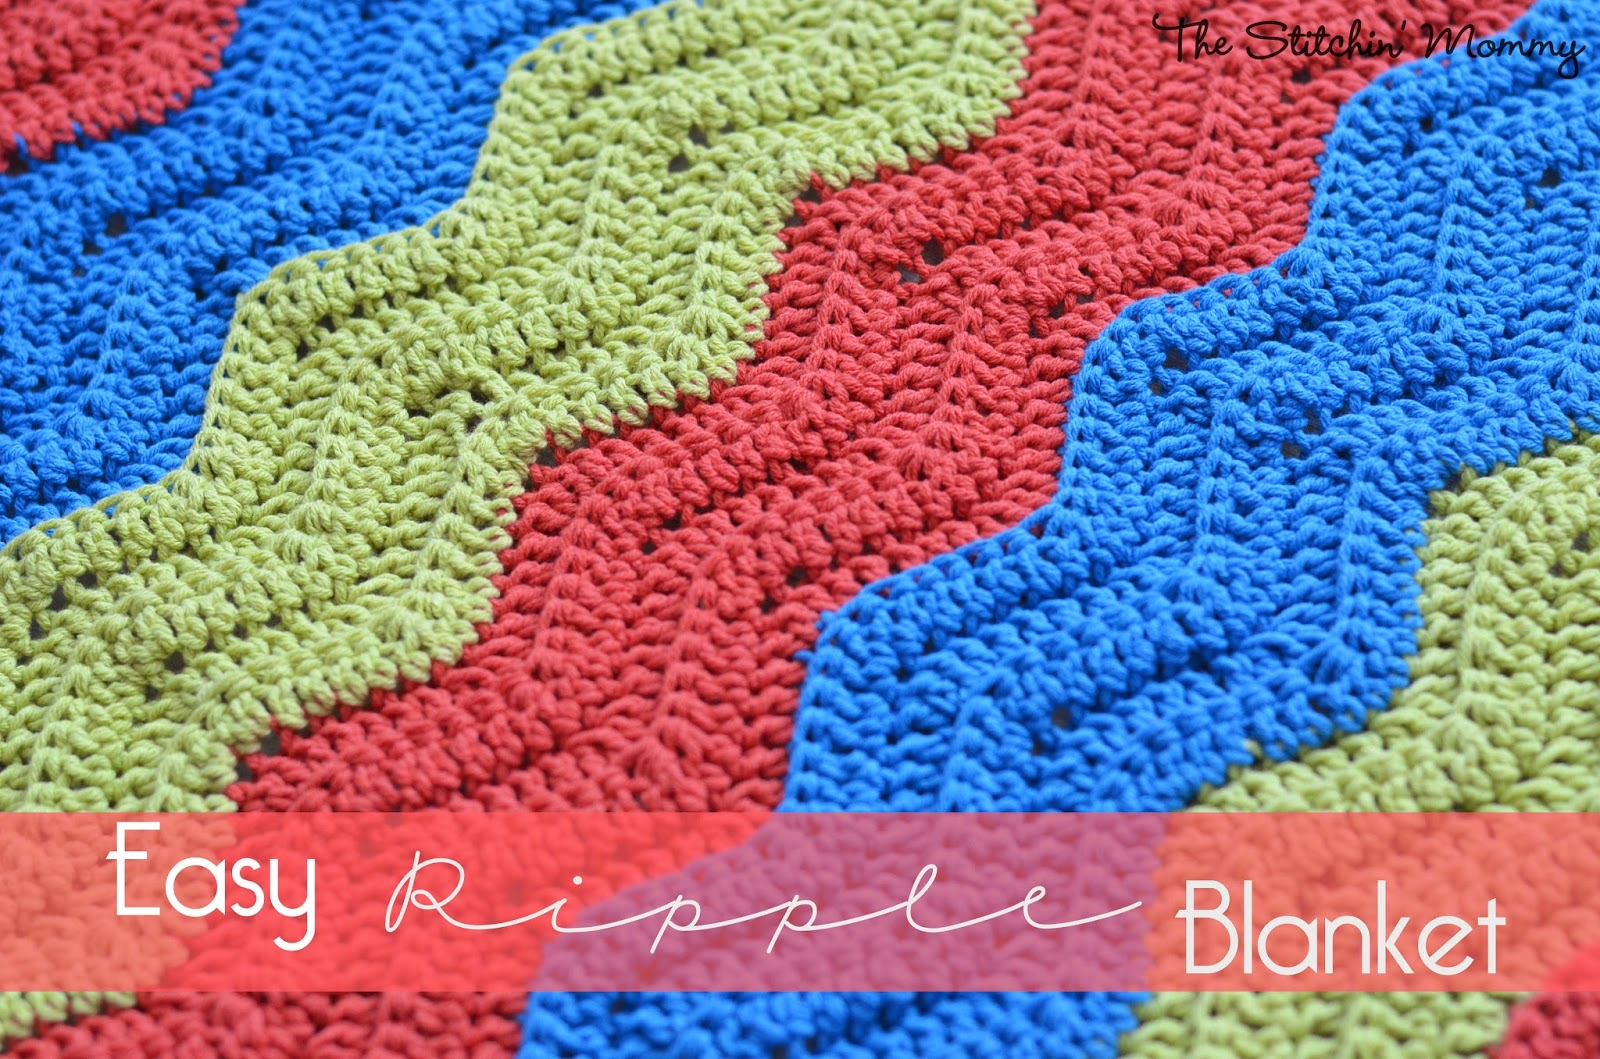 Free Crochet Baby Afghan Edging Patterns : Easy Crochet Ripple Blanket - The Stitchin Mommy